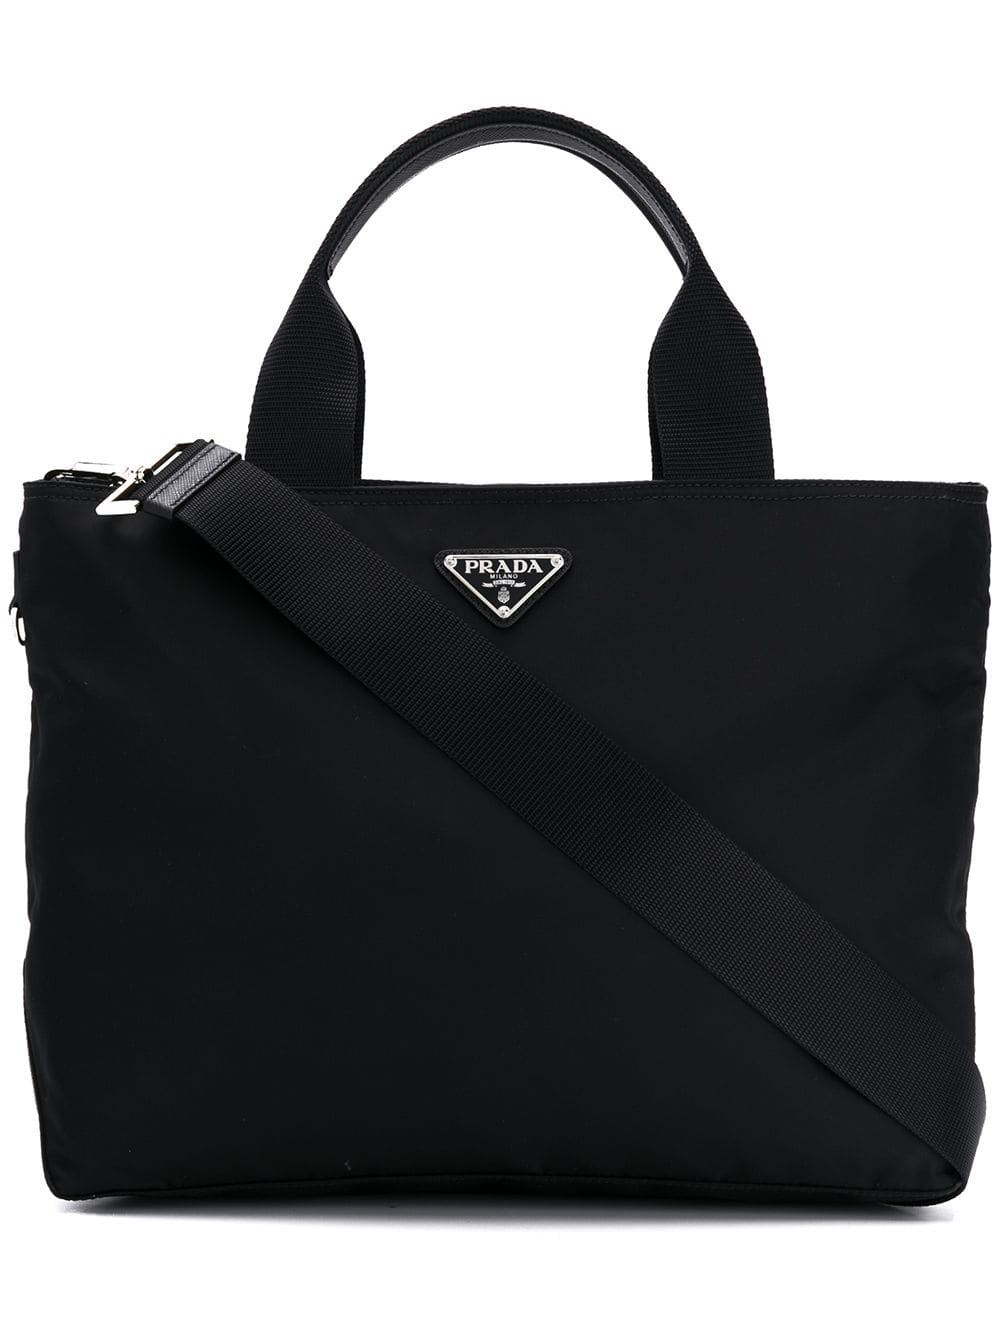 ba1fed4332 prada SHOPPING TOTE available on montiboutique.com - 25758